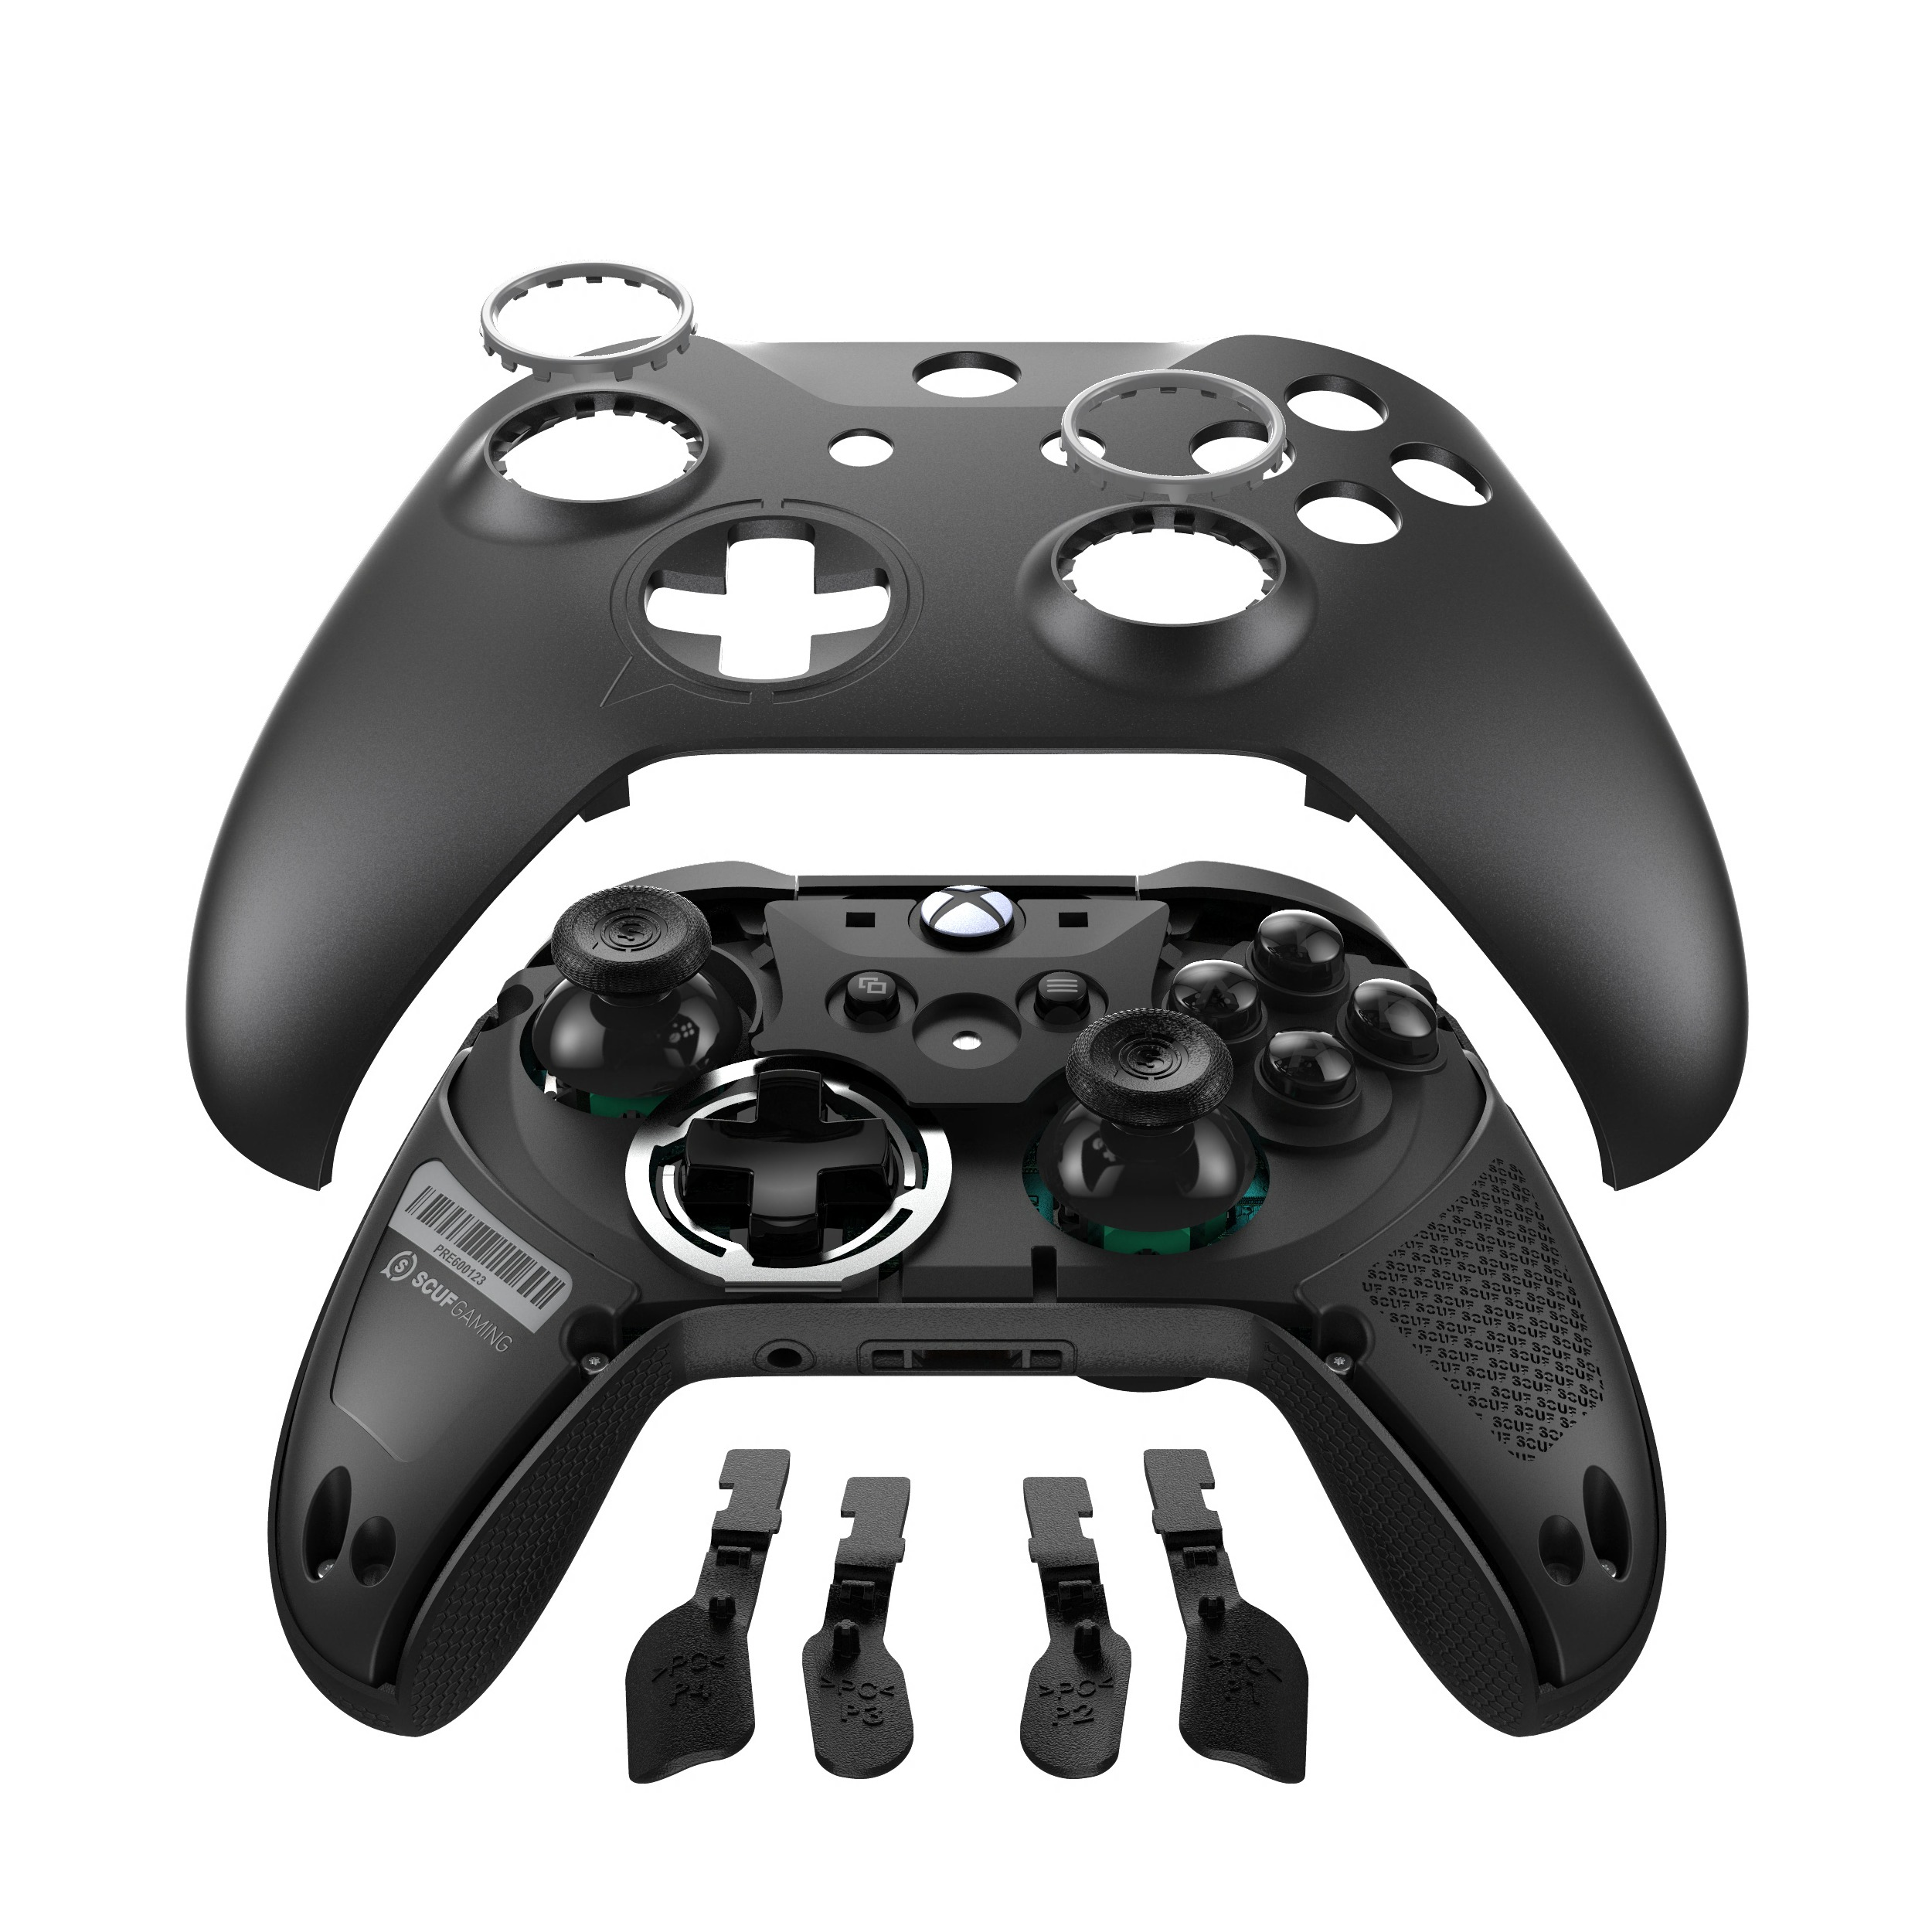 Scuf takes on the Xbox Elite Controller with their customizable